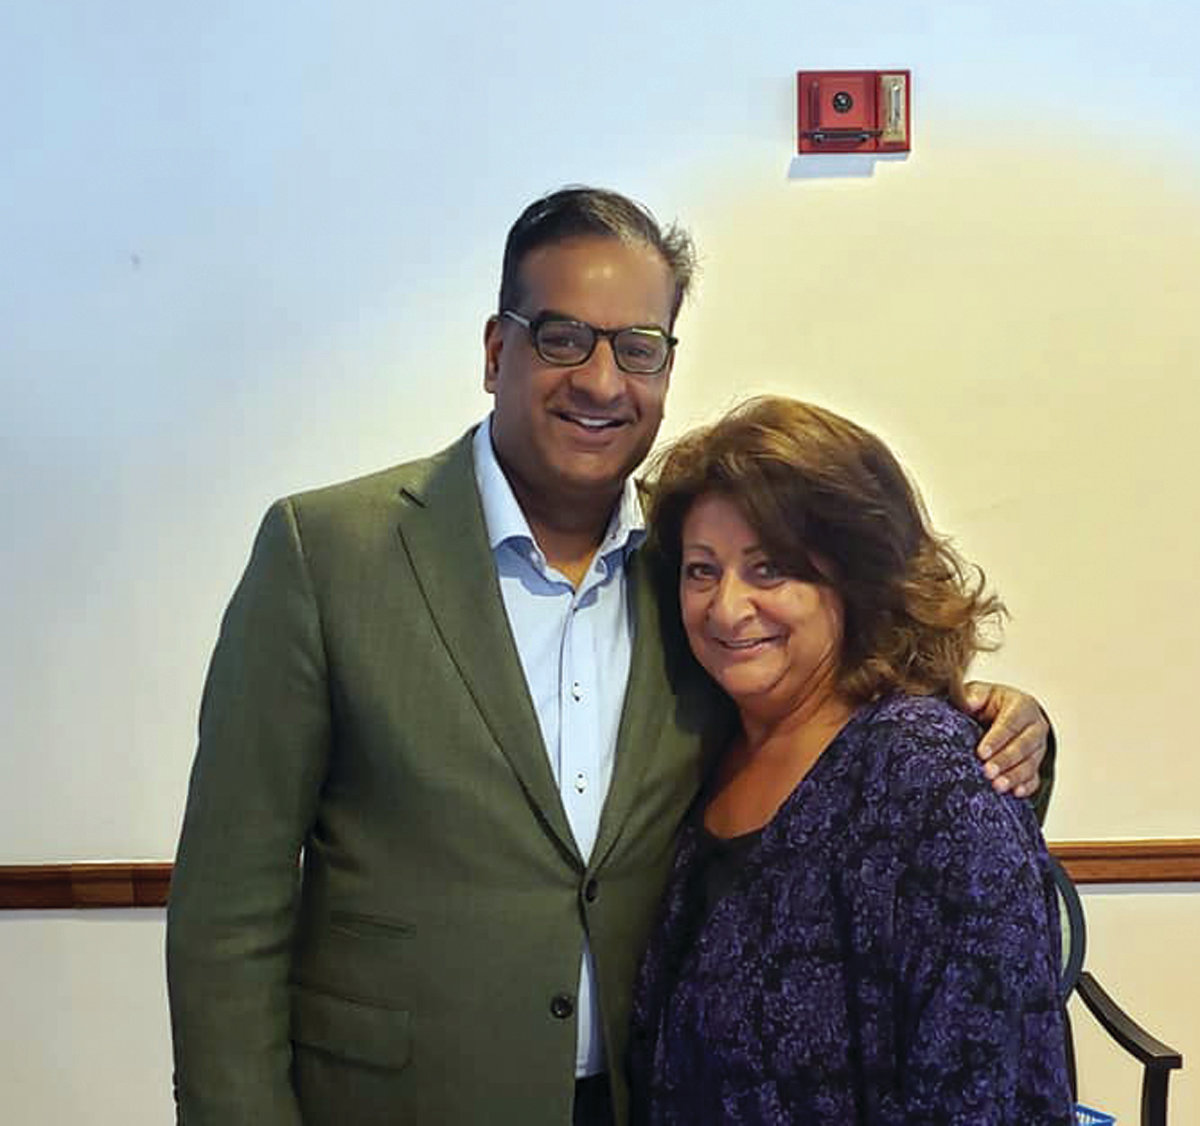 REAL LIFESAVER: Neurosurgeon Dr. Prakash Sampath is pictured with one of his patients, Caroline Caprio, who has recovered after surgery to remove a large brain tumor. Caprio now helps support the Rhode Island Brain and Spine Tumor Foundation through events such as the upcoming Fiesta at the Imperial Room in Cranston.